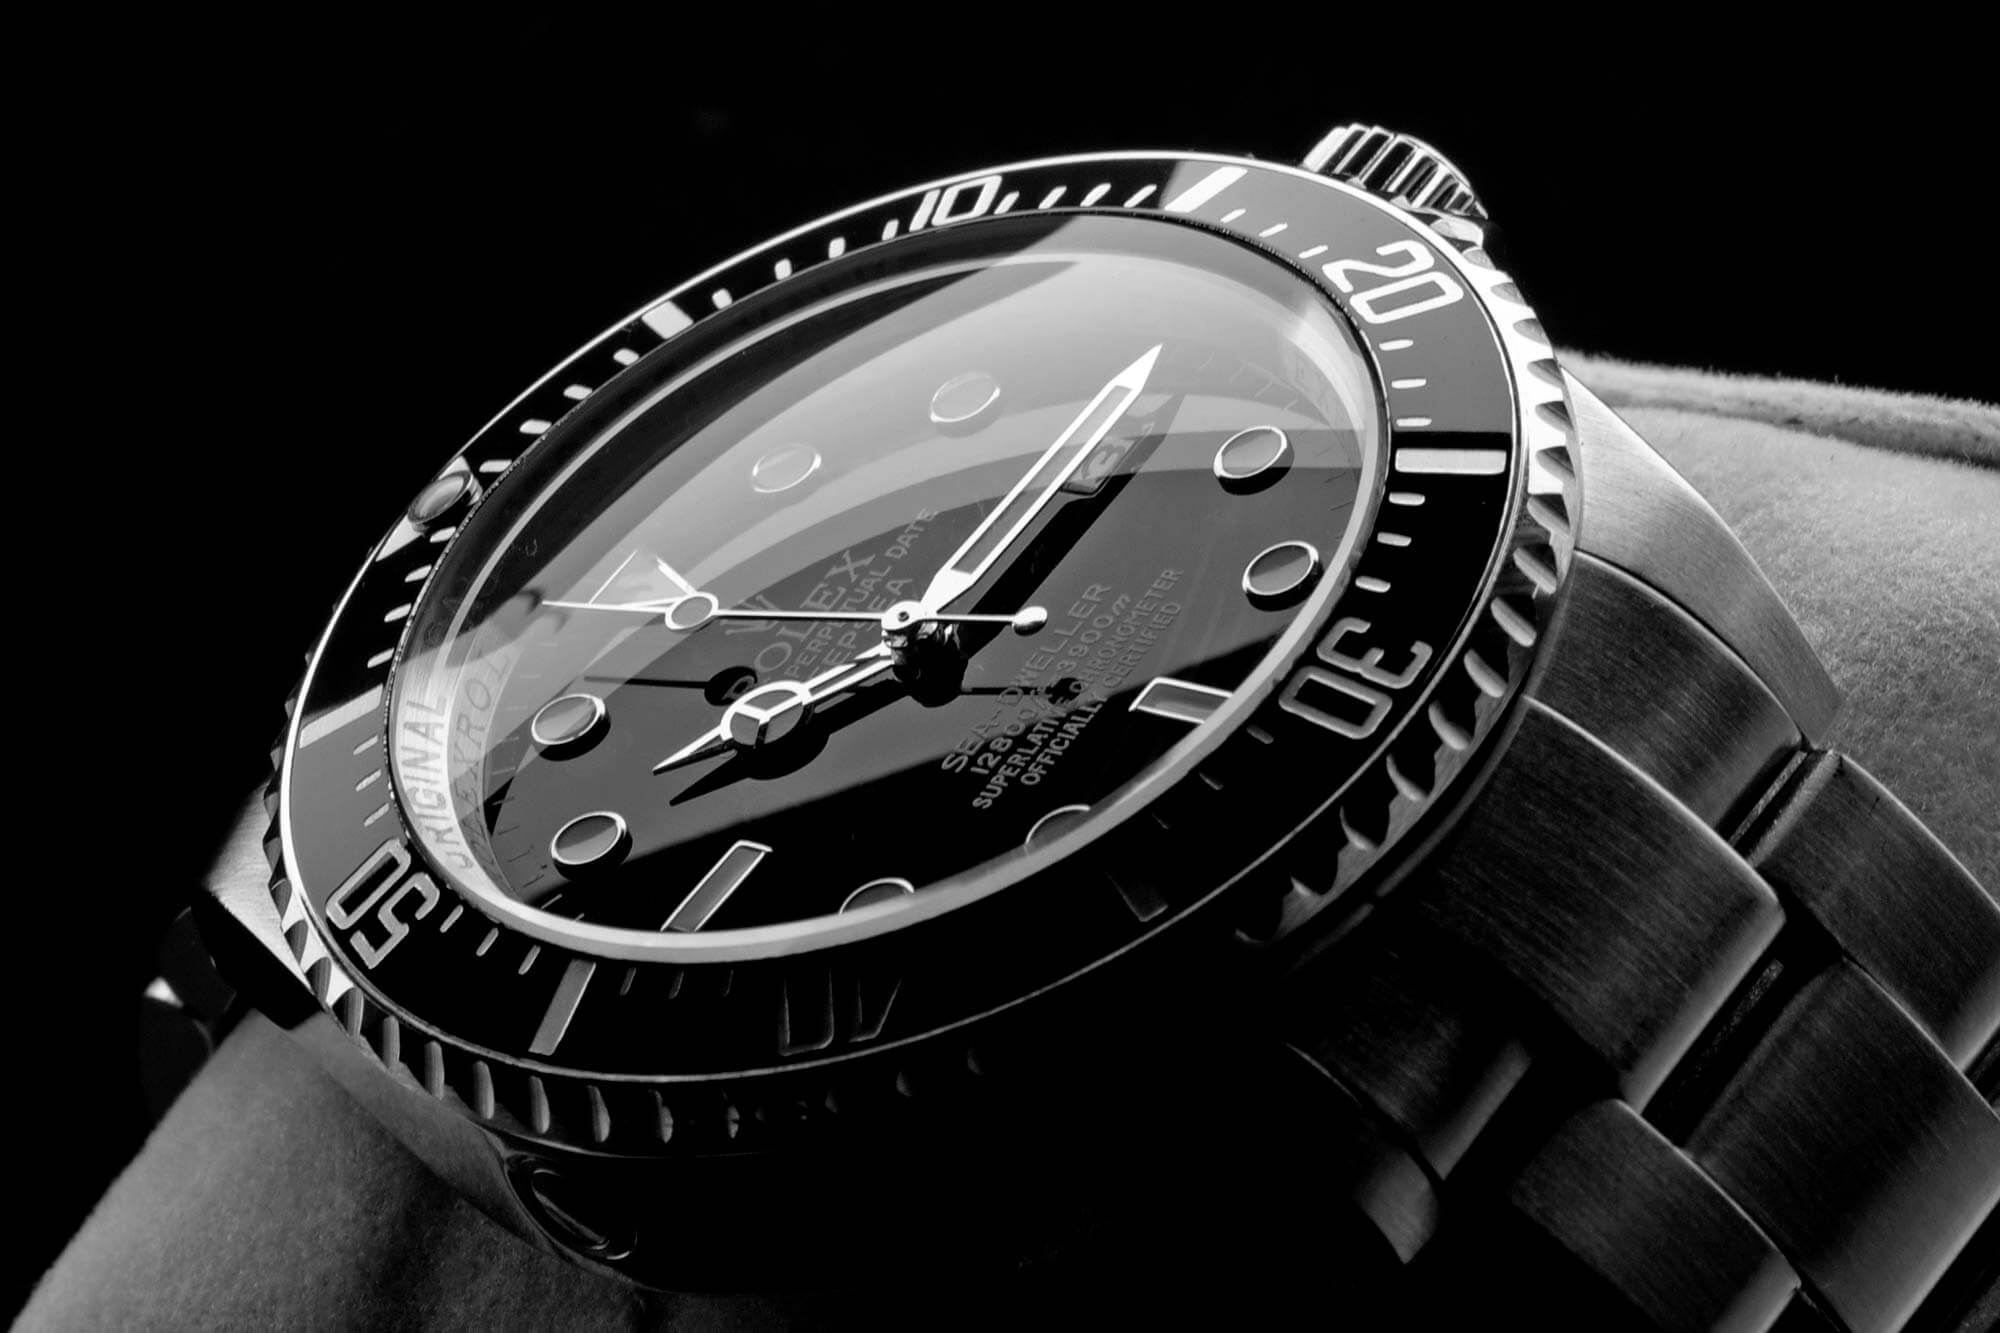 Stainless Steel: An Incredibly Stylish and Versatile Timepiece